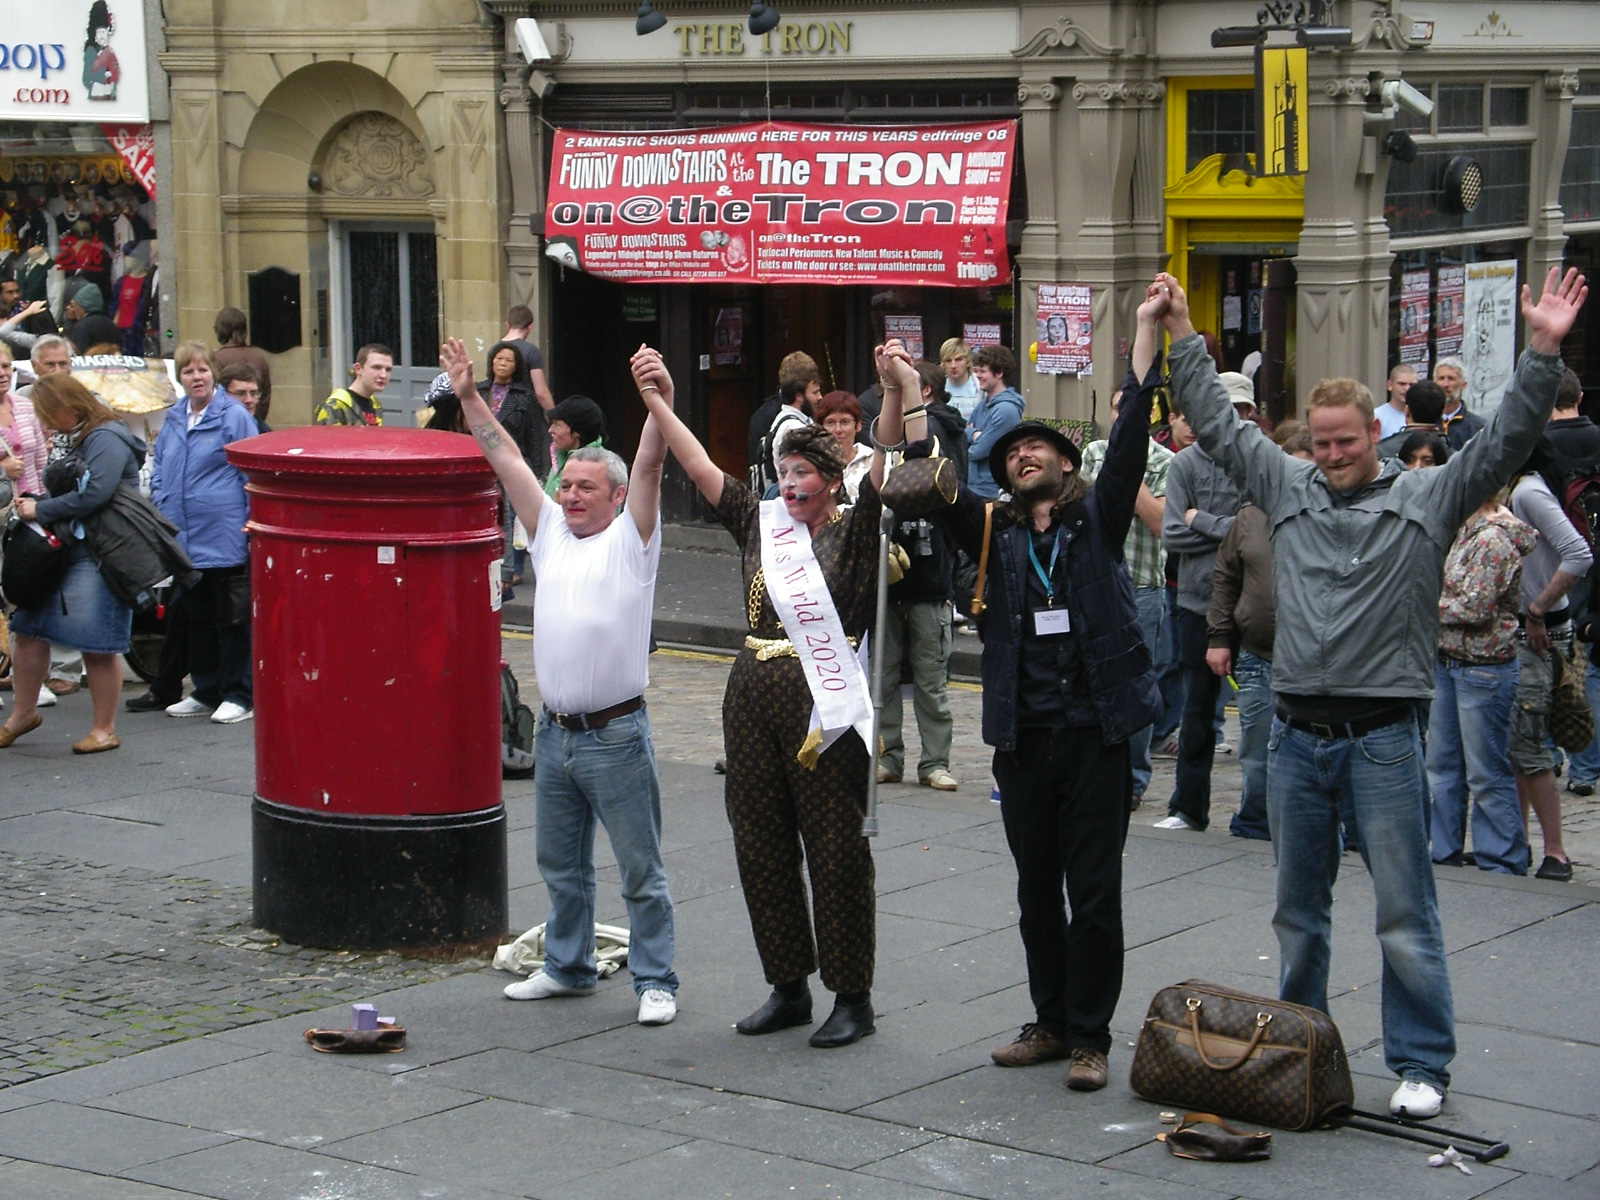 Comedy player and her volunteers, Edinburgh, in Fringe Festival